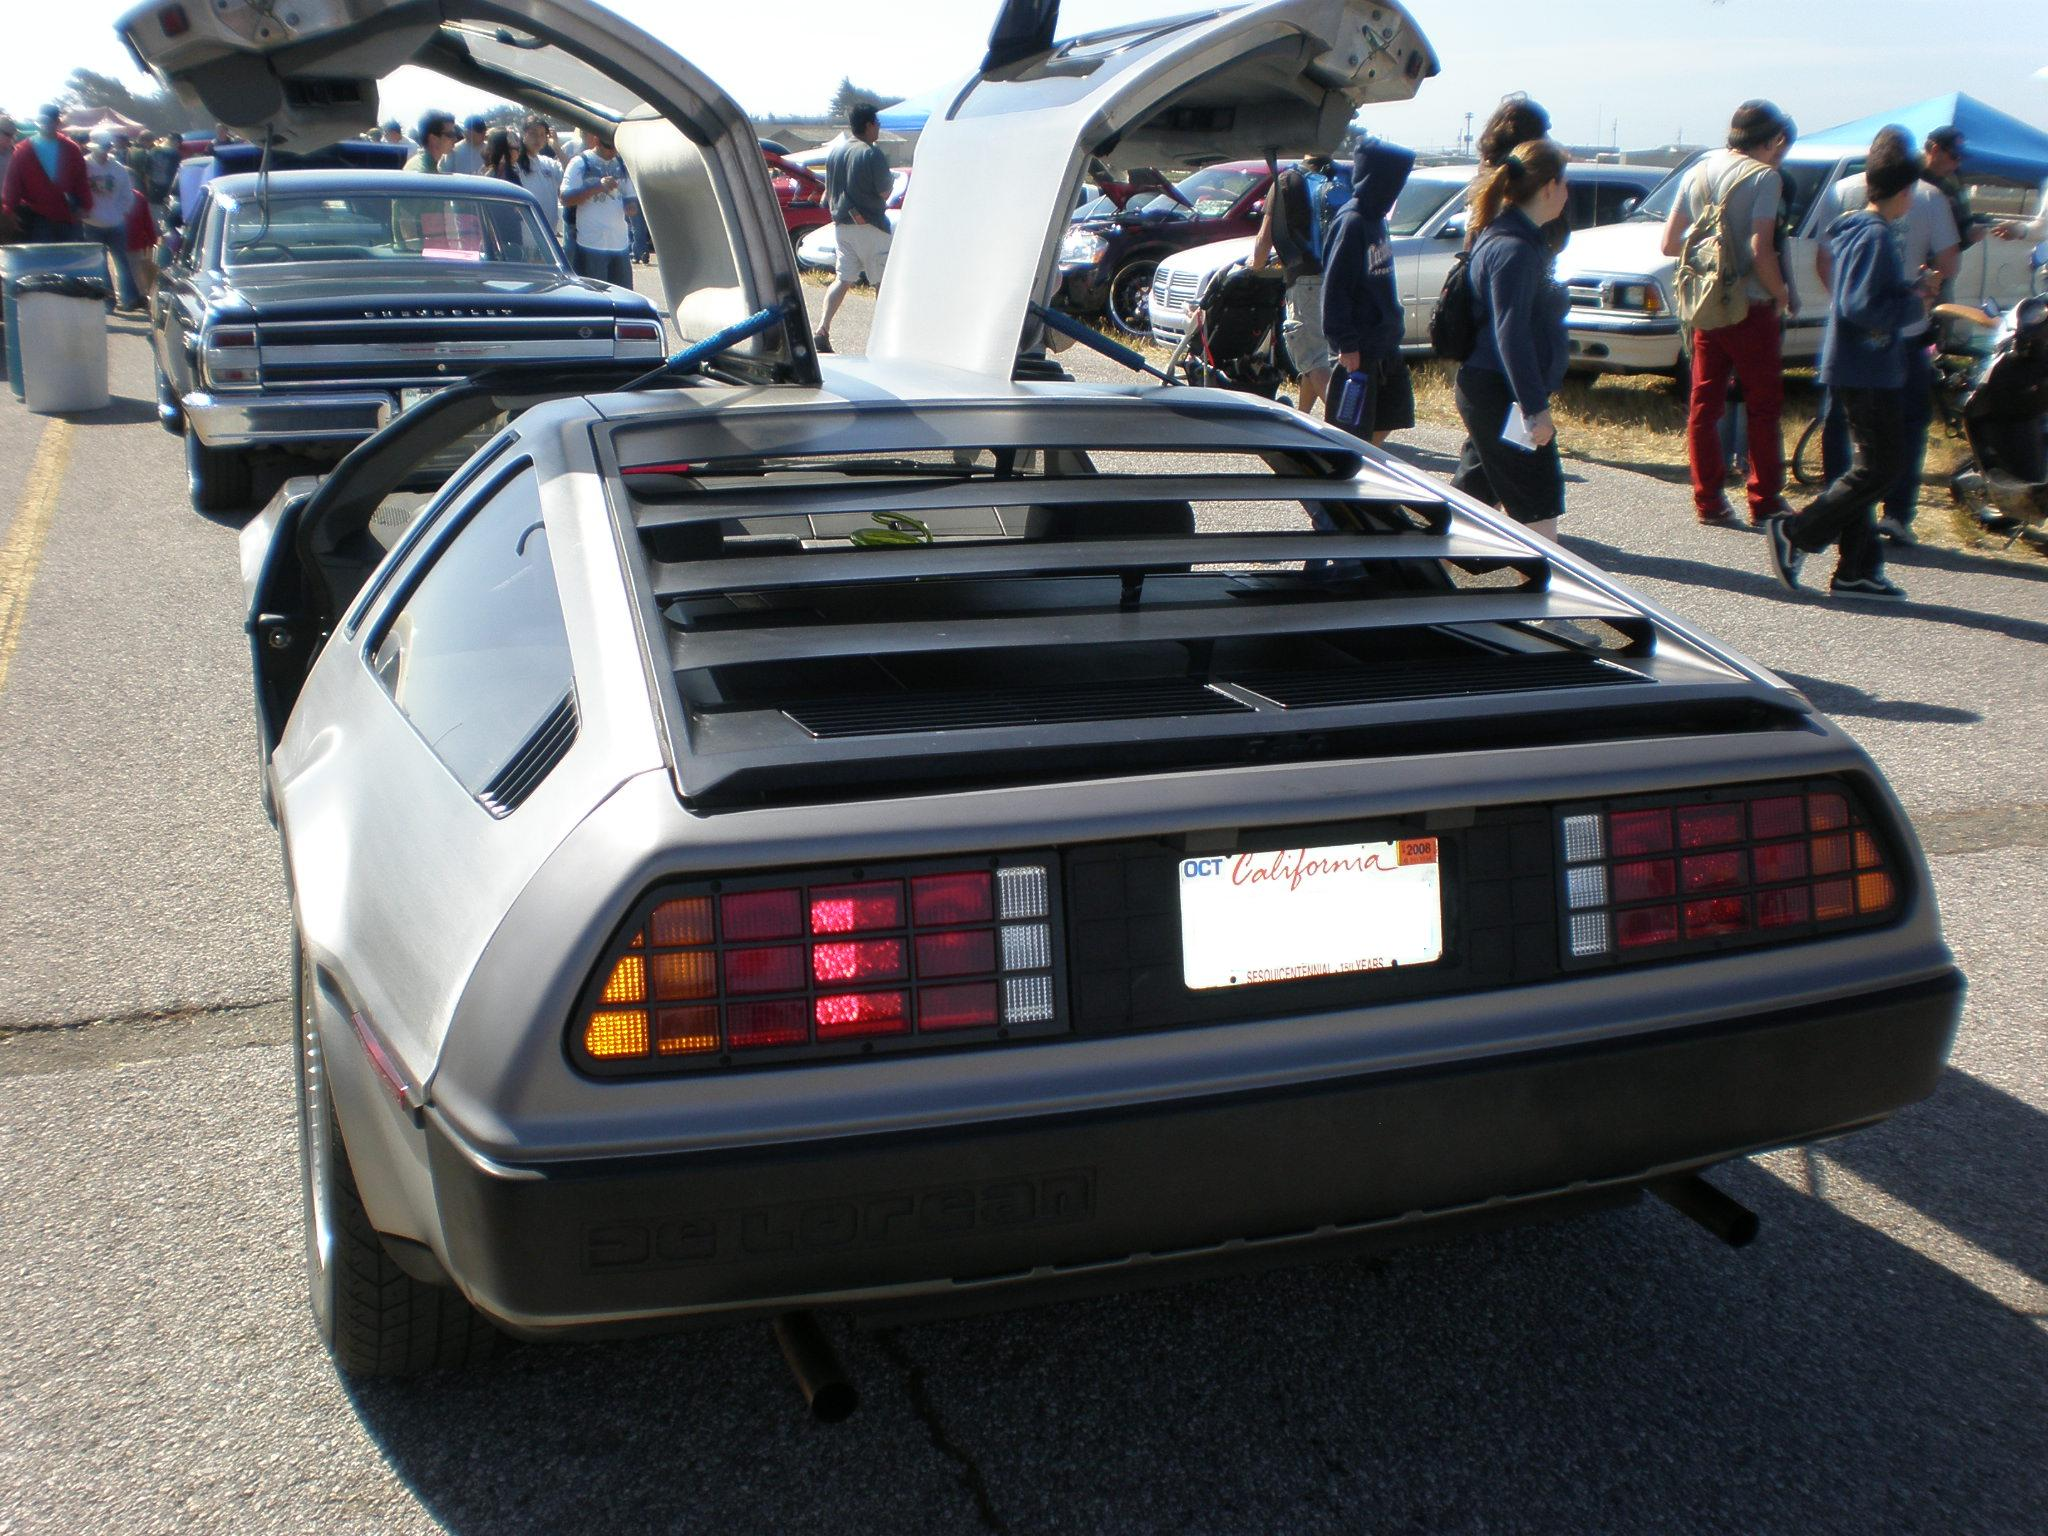 DeLorean DMC 12 rear DeLorean: The Strange Story Behind The Iconic 80s Sports Car And Its Creator